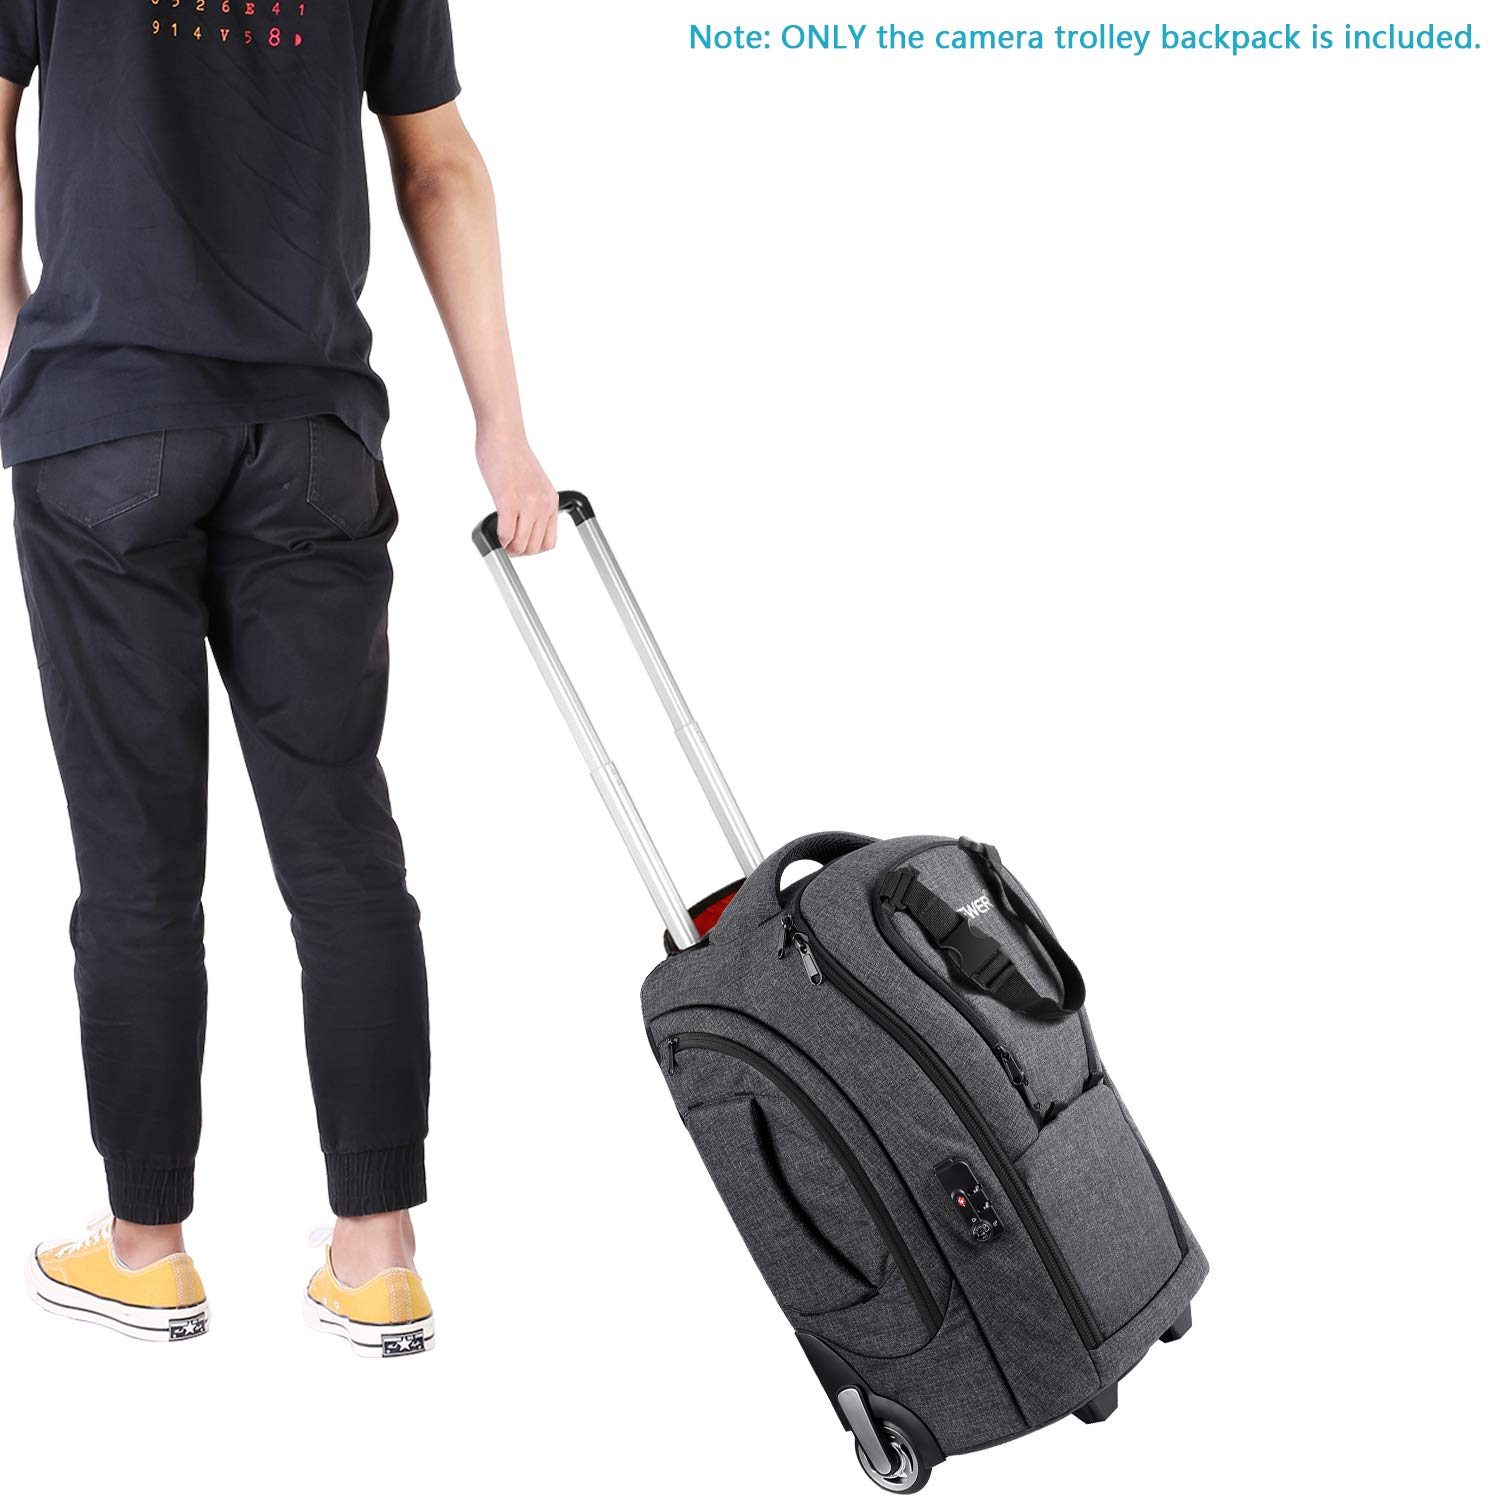 Neewer 2-in-1 Camera Rolling Backpack Trolley Case with TSA Lock, Anti-Shock Detachable Padded Compartment, Hidden Pull Bar, Durable, Waterproof for Lens, Lens Hood, and Tablet (Grey/Red) by Neewer (Image #5)